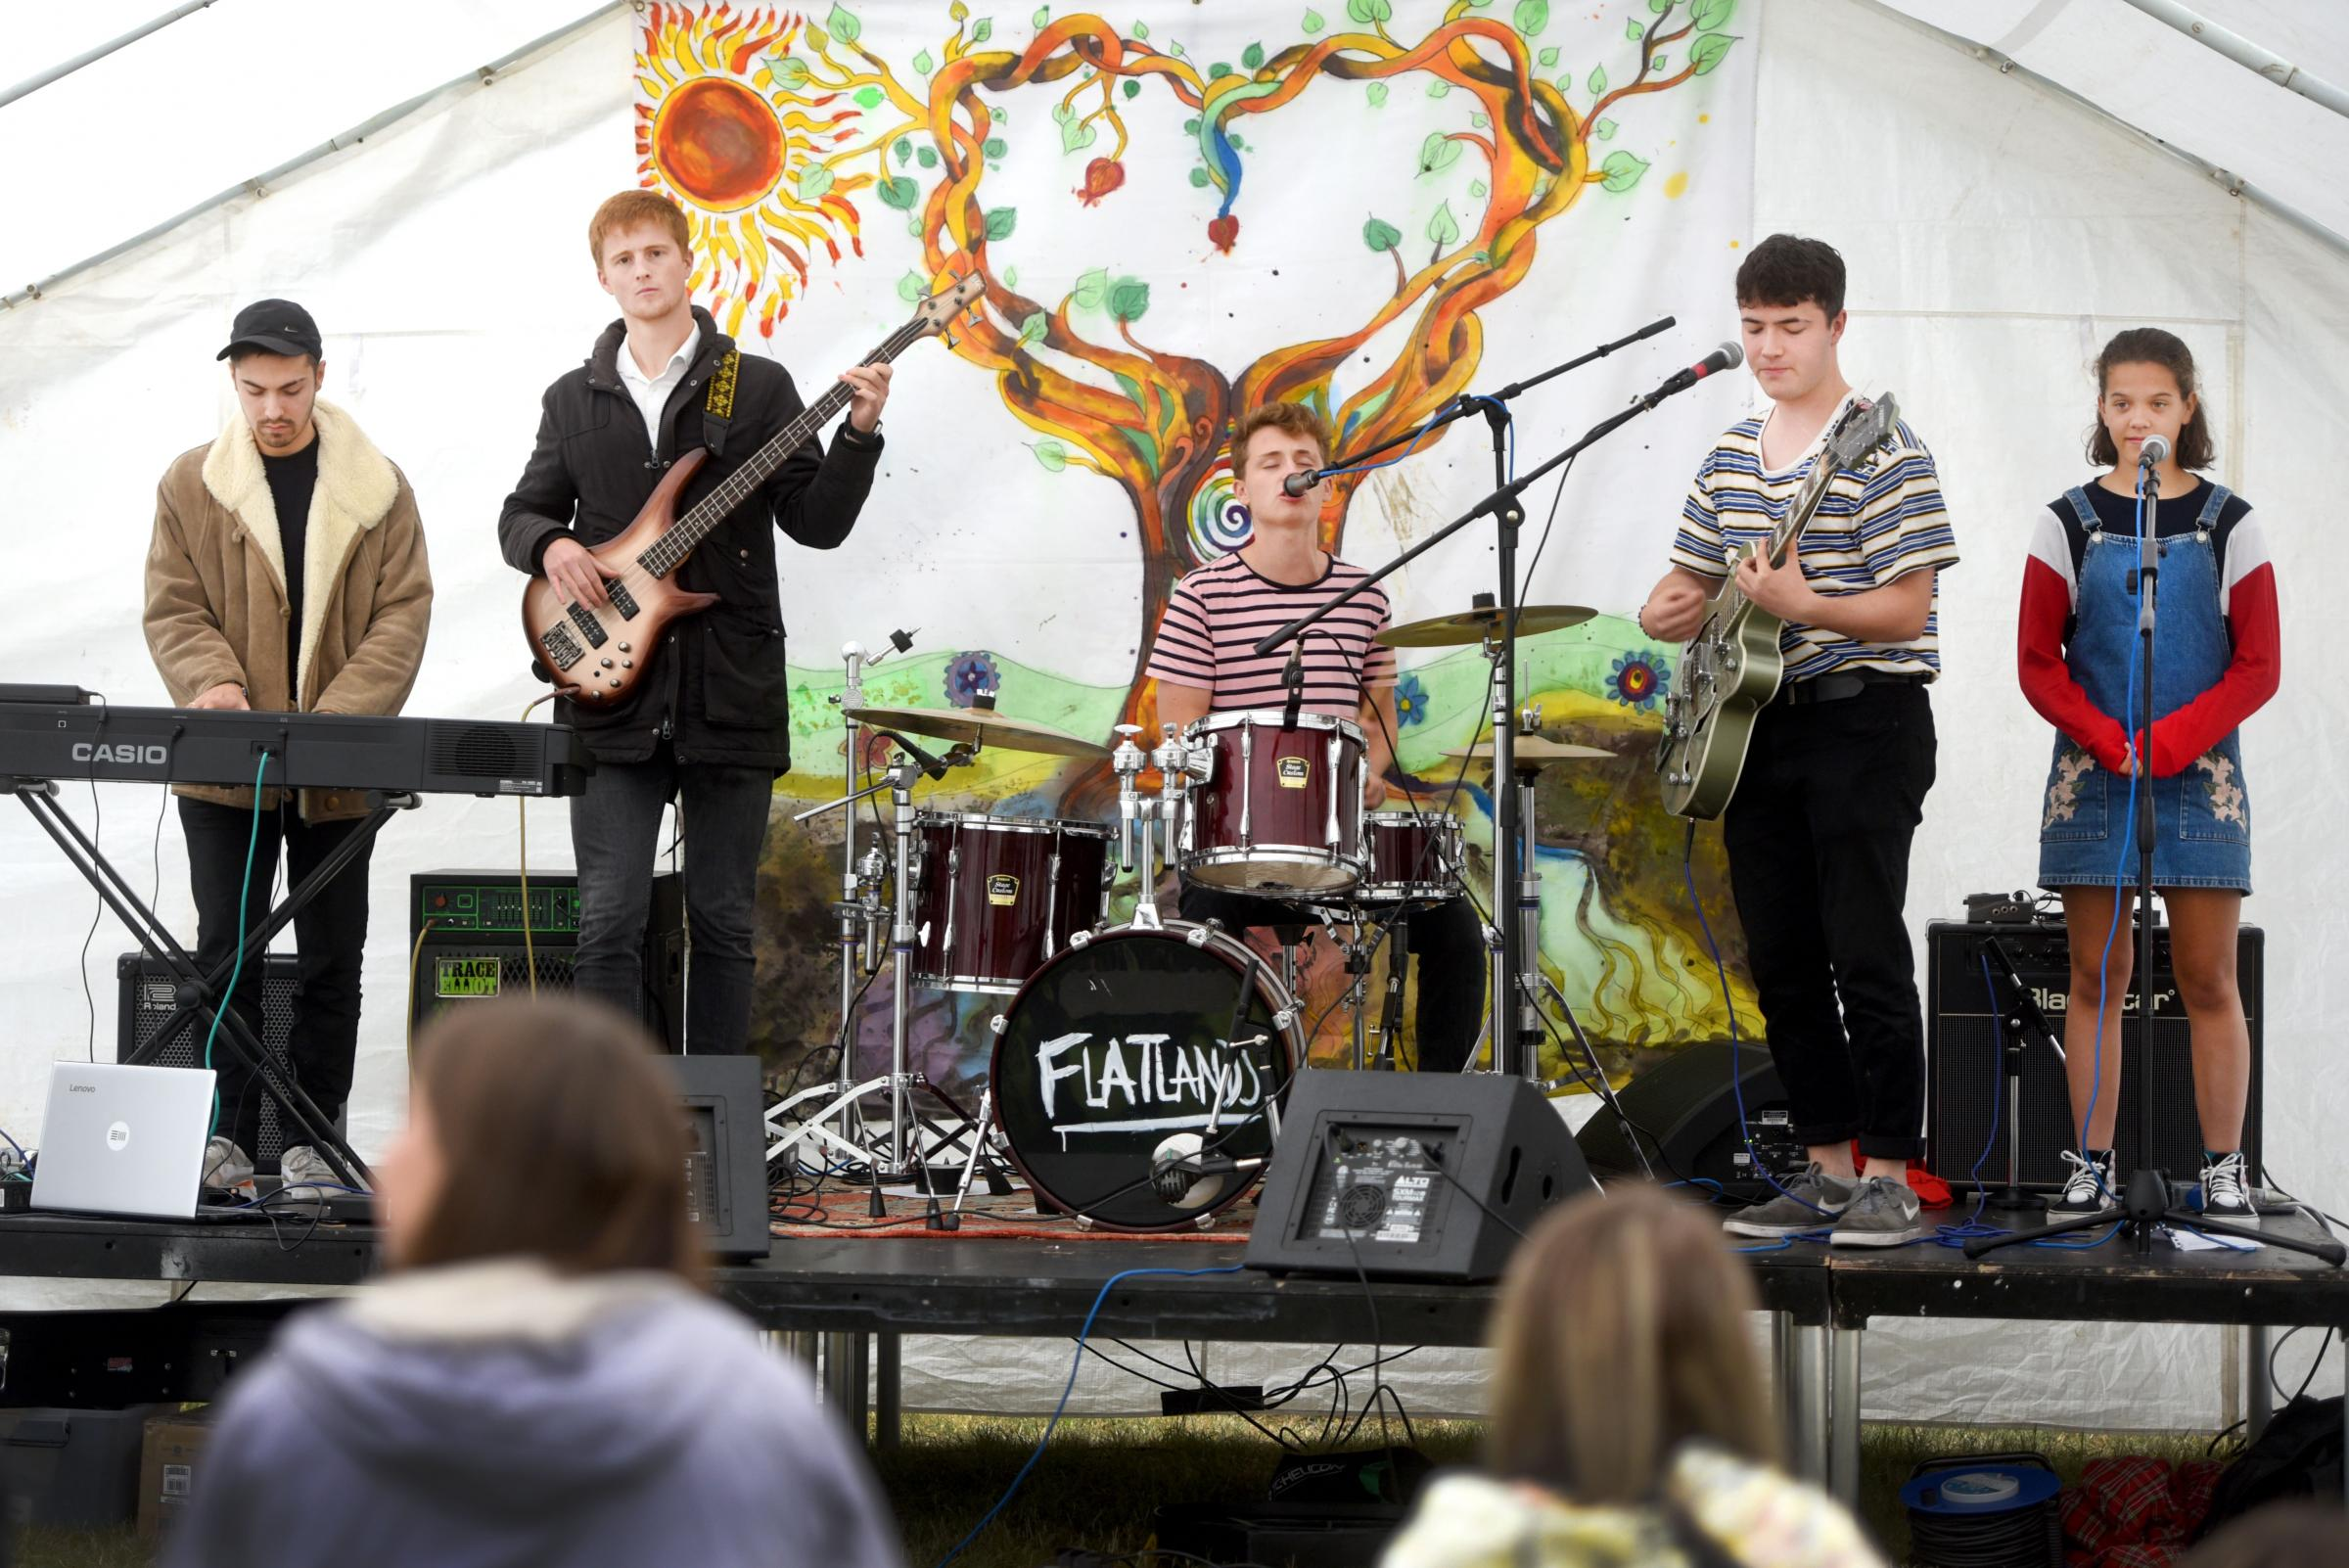 A recent fundraiser for the Wolvercote Young People's Club, where 'Flatlands' performed. Picture: Richard Cave